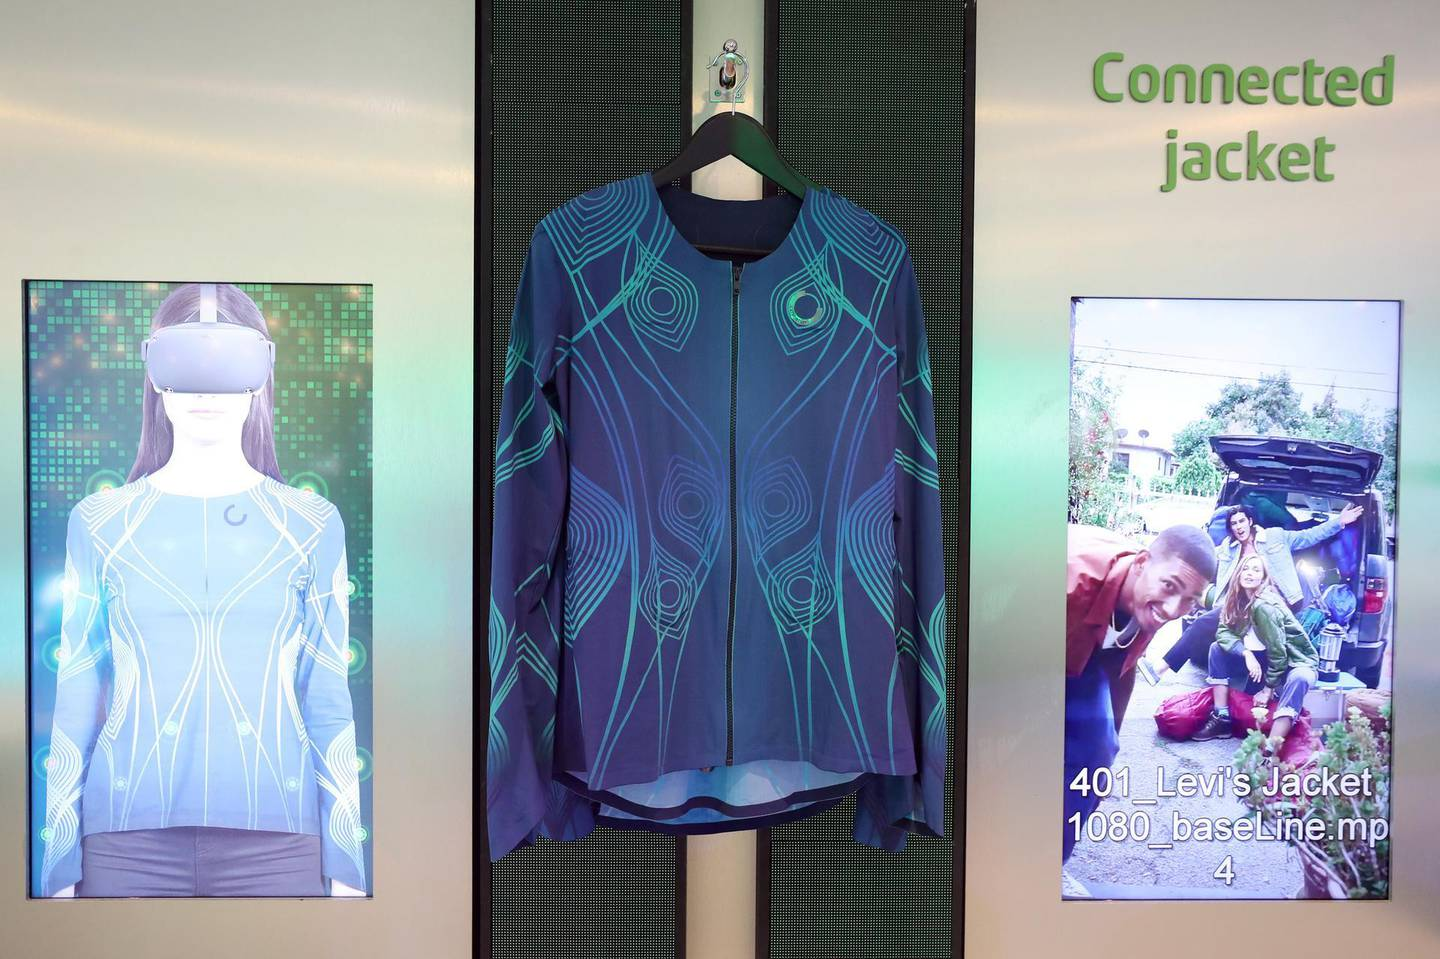 Dubai, United Arab Emirates - December 06, 2020: The connected jacket during GITEX 2020 at the World Trade Centre. December 6th, 2020 in Dubai. Chris Whiteoak / The National